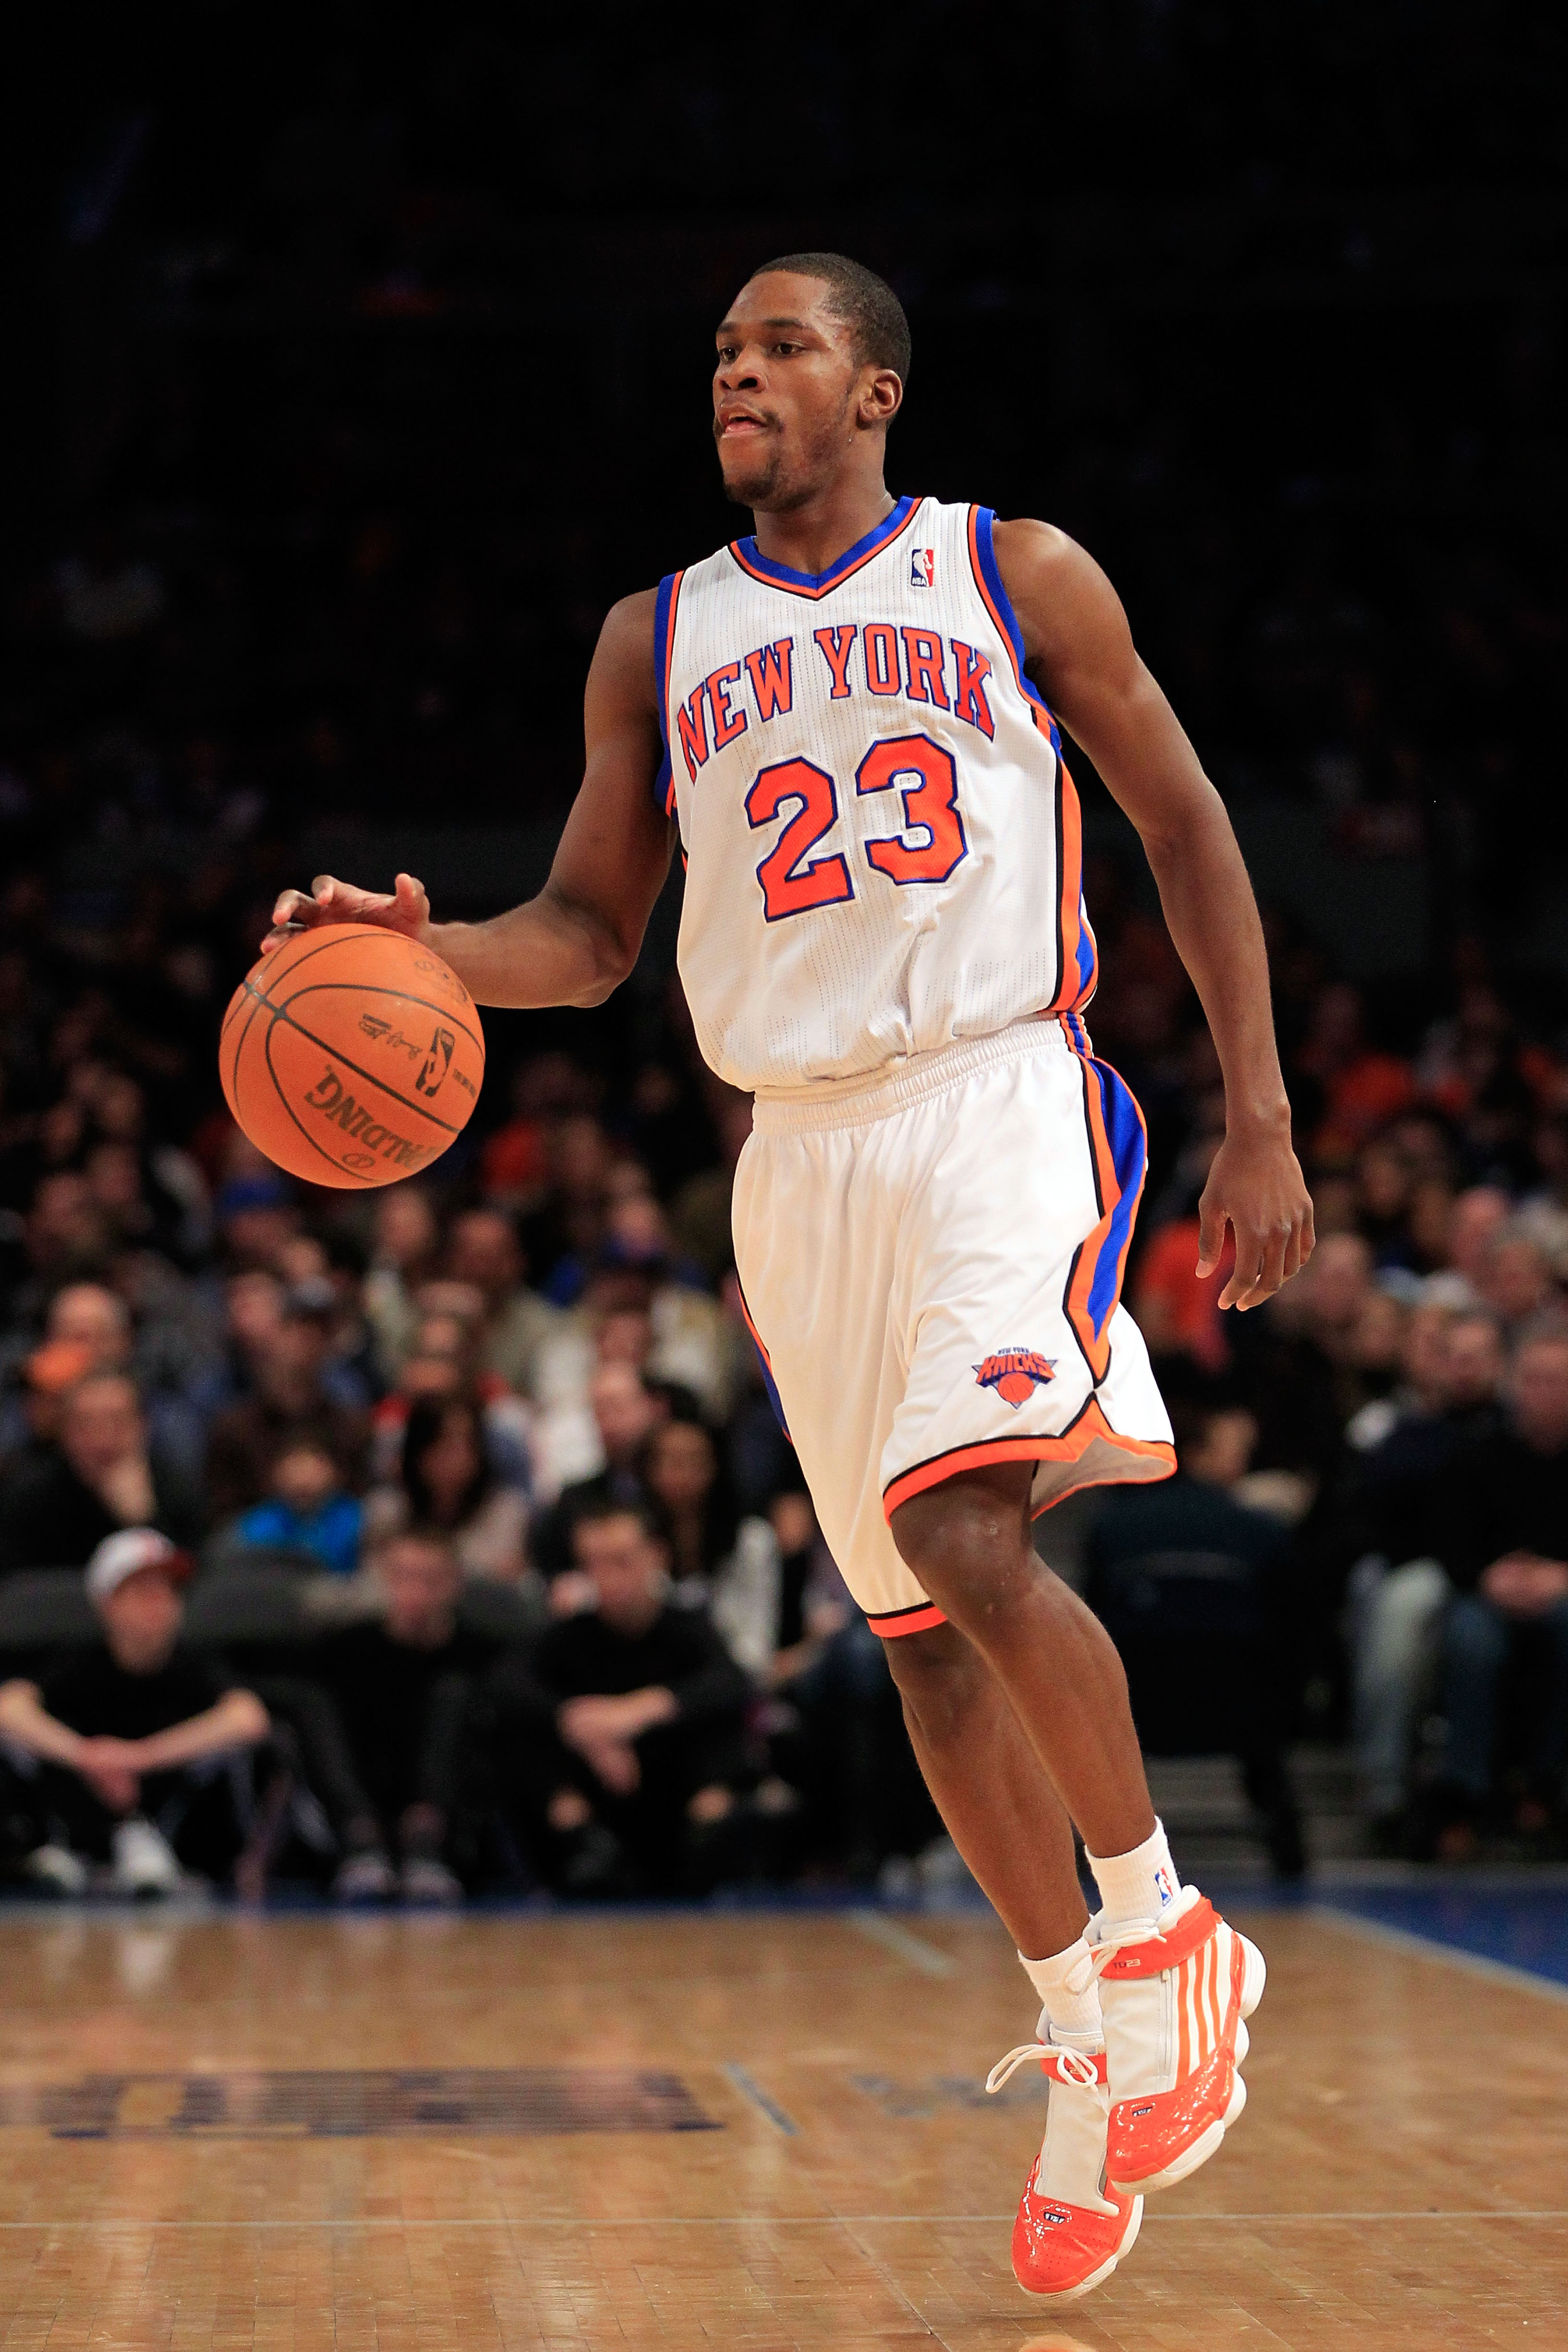 NEW YORK, NY - FEBRUARY 06:  Toney Douglas #23 of the New York Knicks dribbles the ball against the Philadelphia 76ers at Madison Square Garden on February 6, 2011 in New York City. NOTE TO USER: User expressly acknowledges and agrees that, by downloading